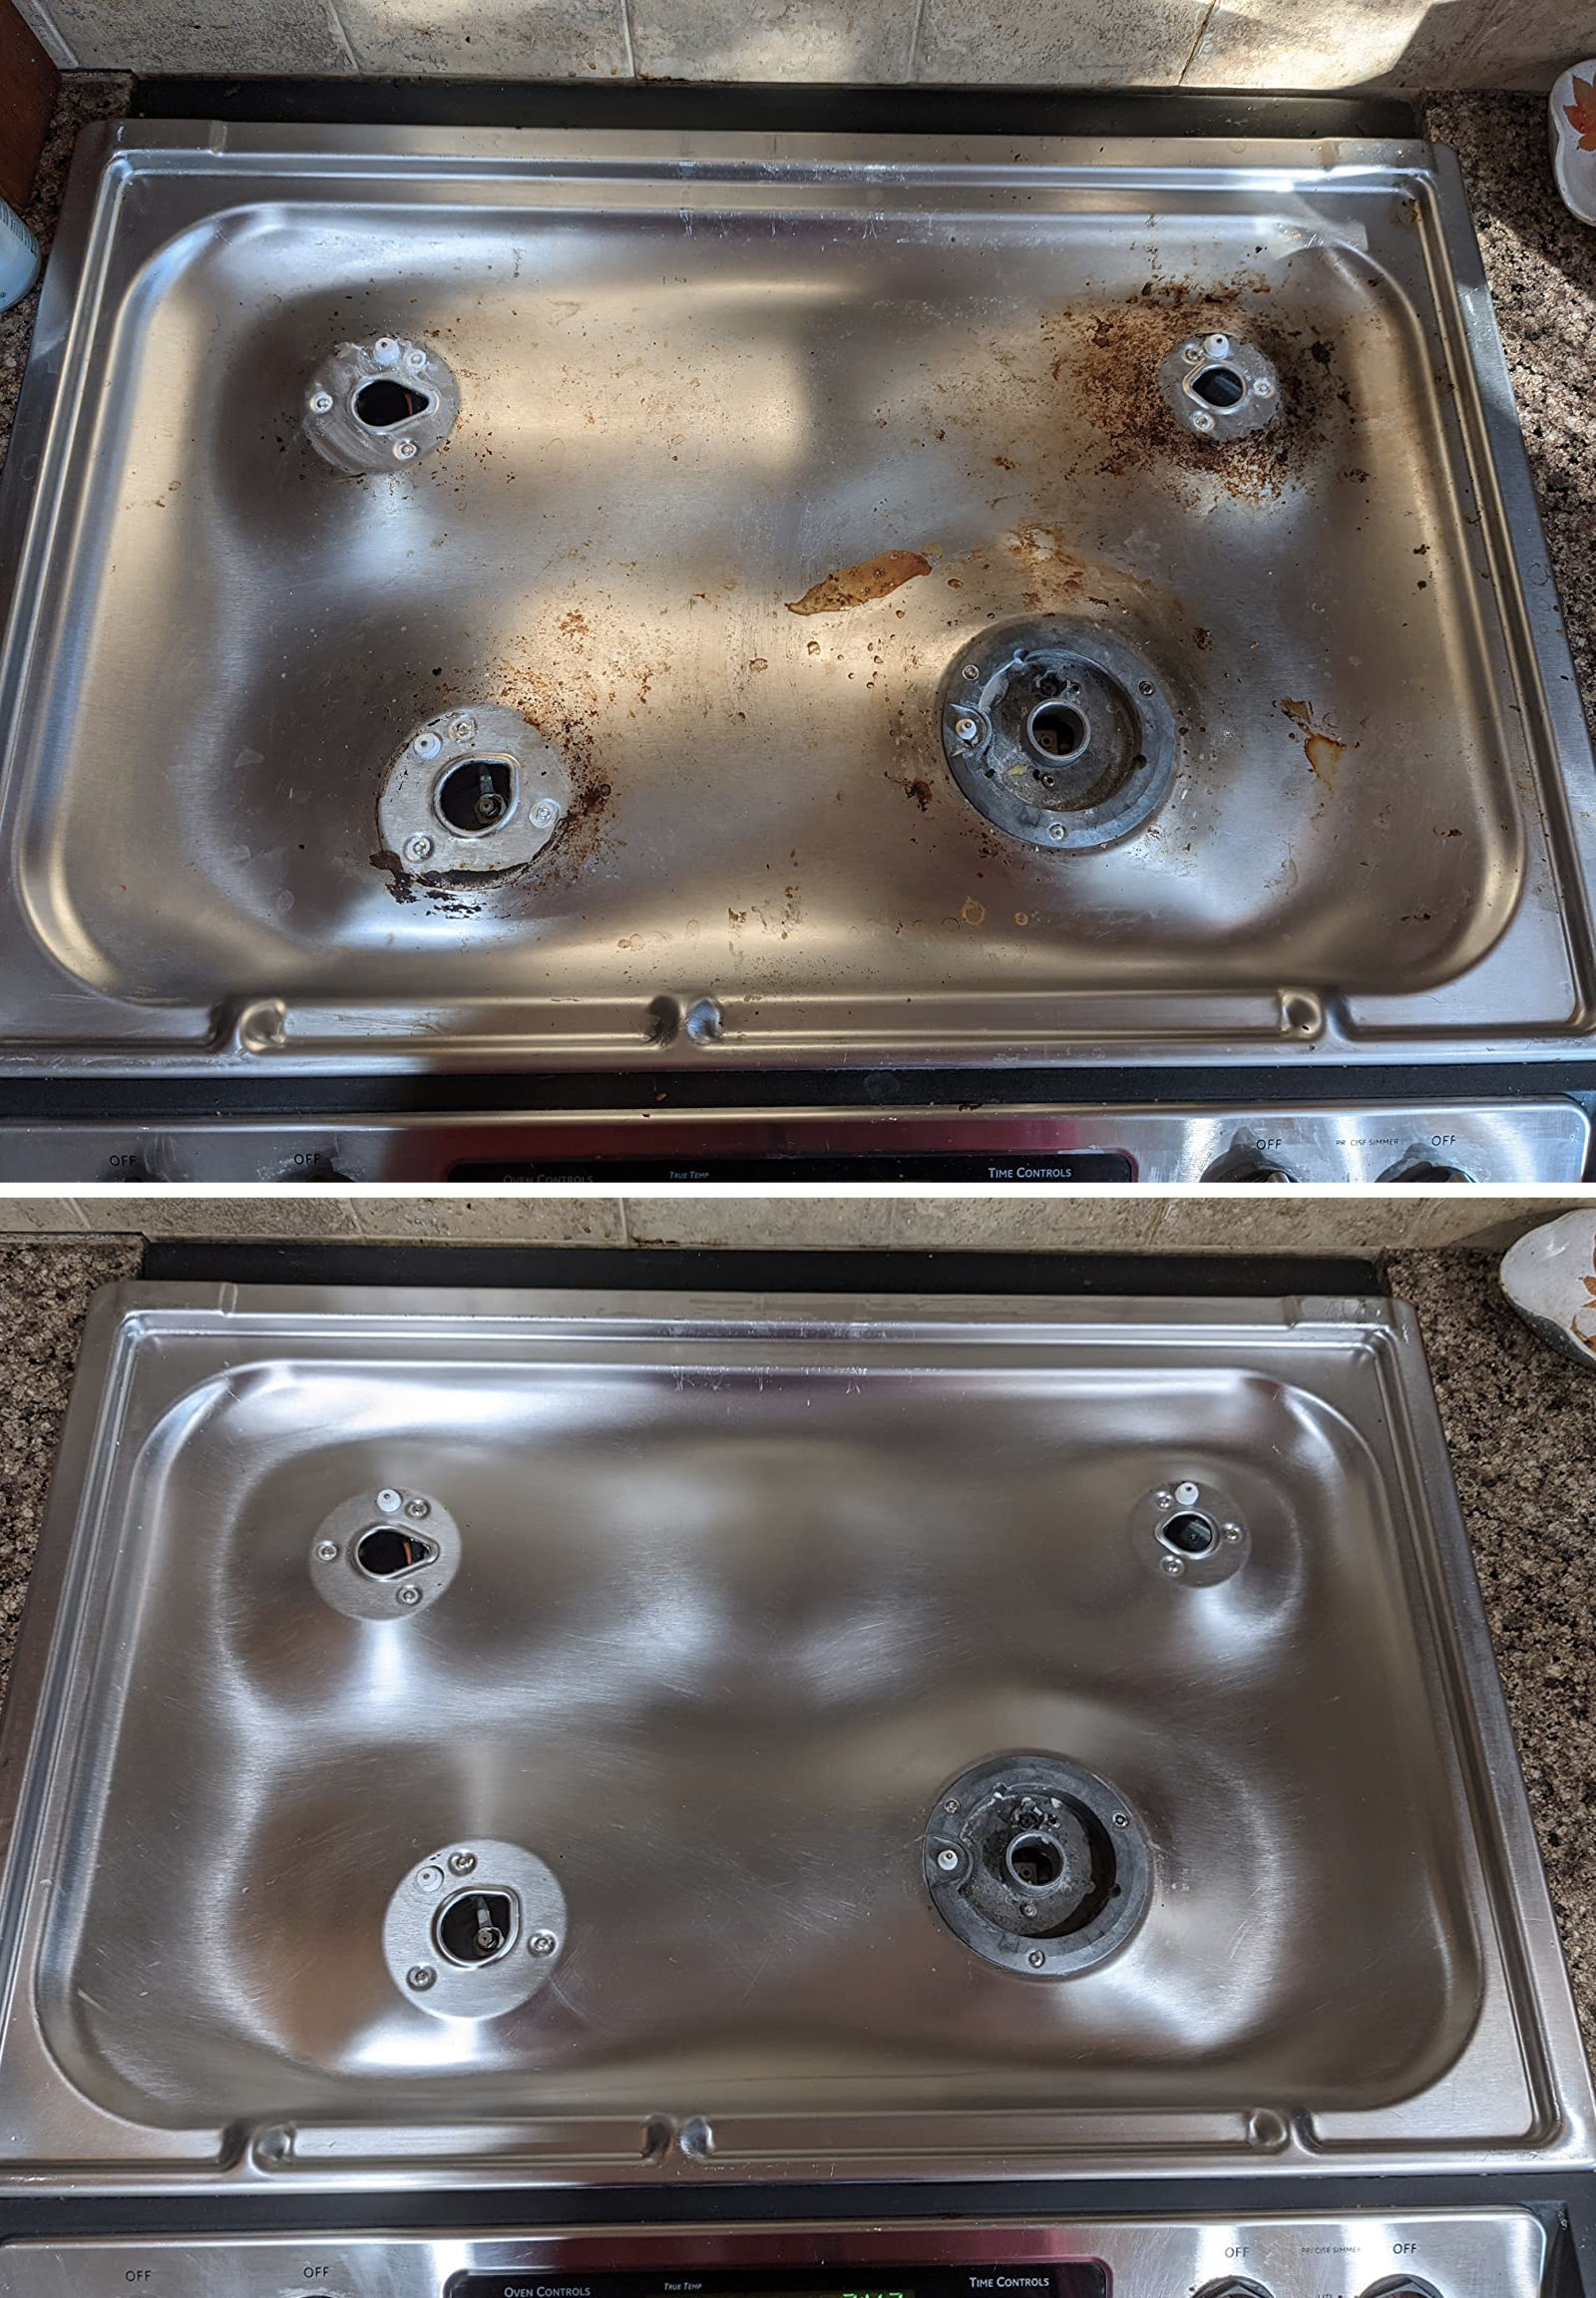 before: reviewer's stainless steel cooktop, covered in cooked-on oil splatters and after: the cooktop shiny with no stains in sight